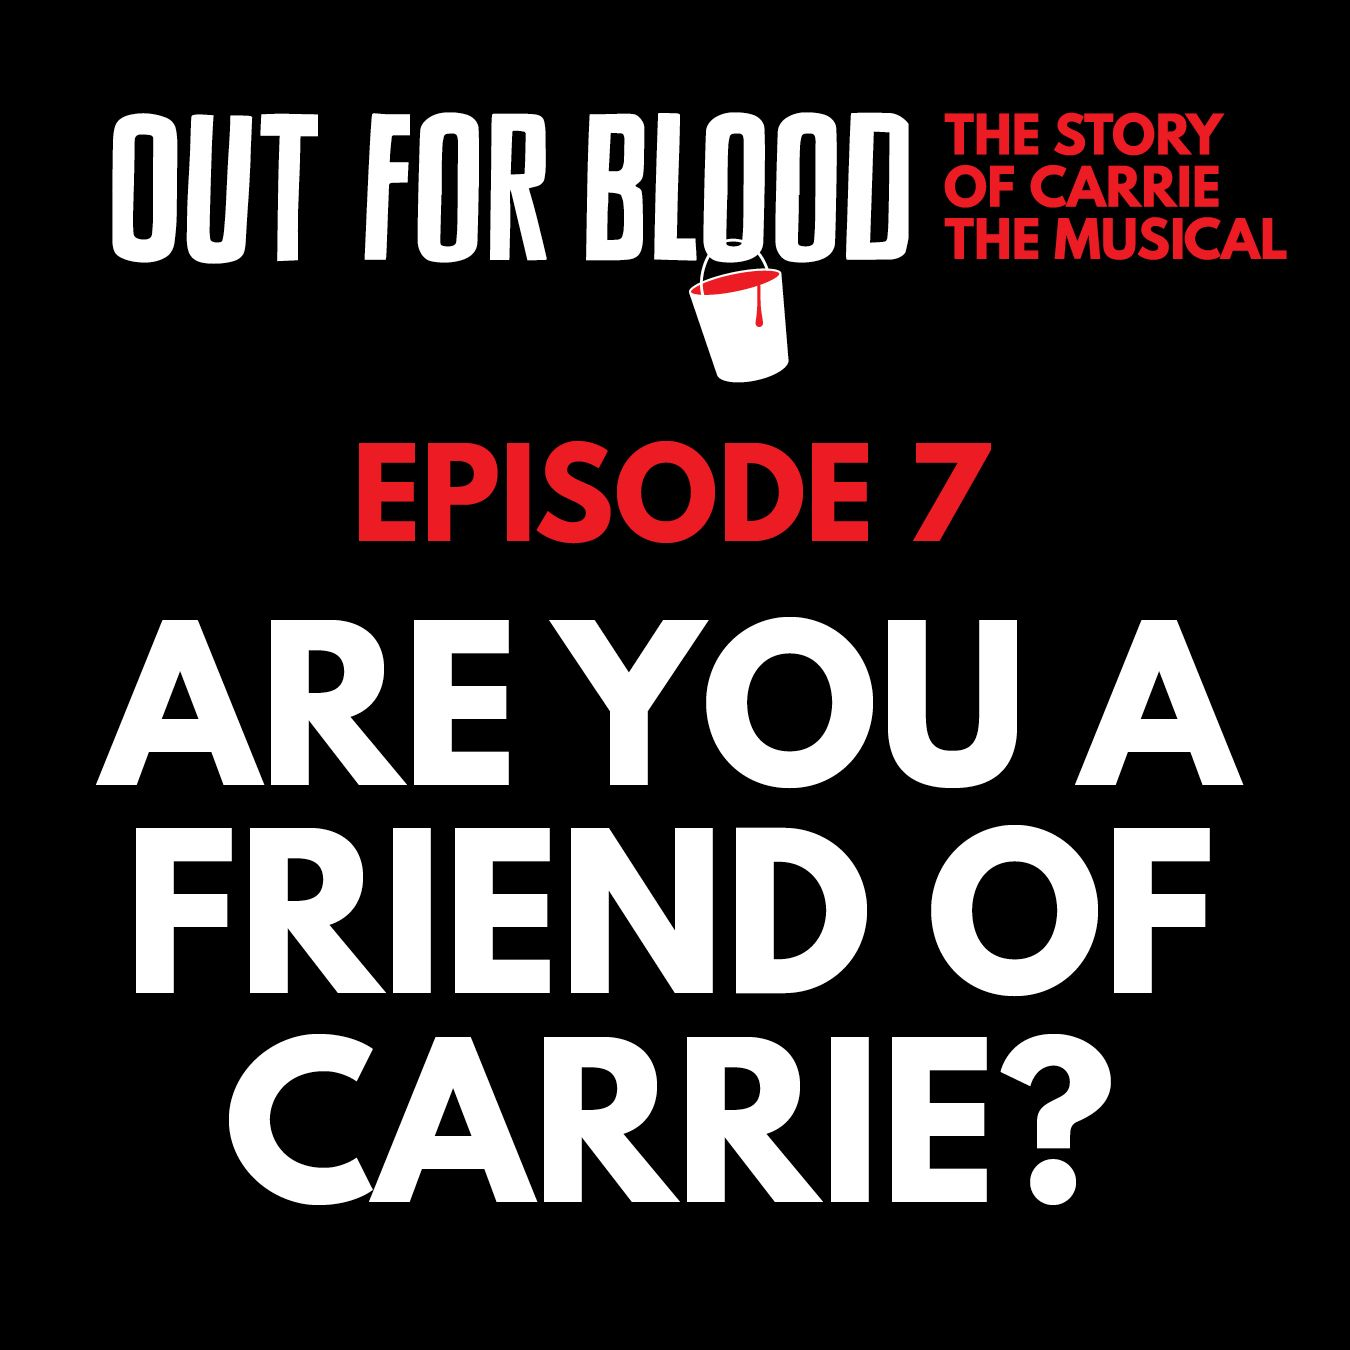 Chapter 7: Are you a Friend of Carrie?